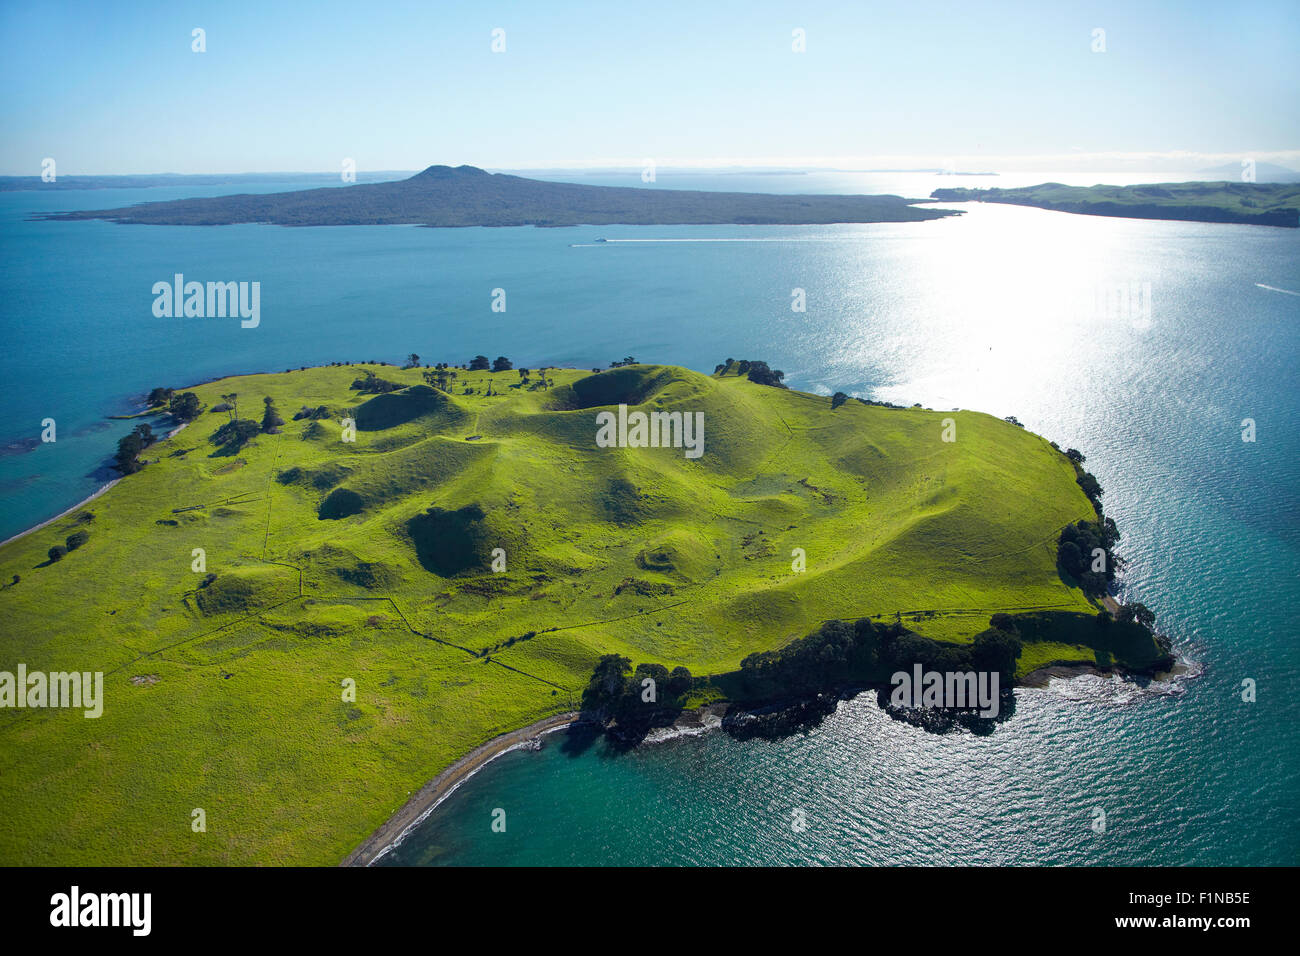 Volcanic craters on Browns Island, or Motukorea, and Rangototo Island in distance, Hauraki Gulf, Auckland, New Zealand - Stock Image